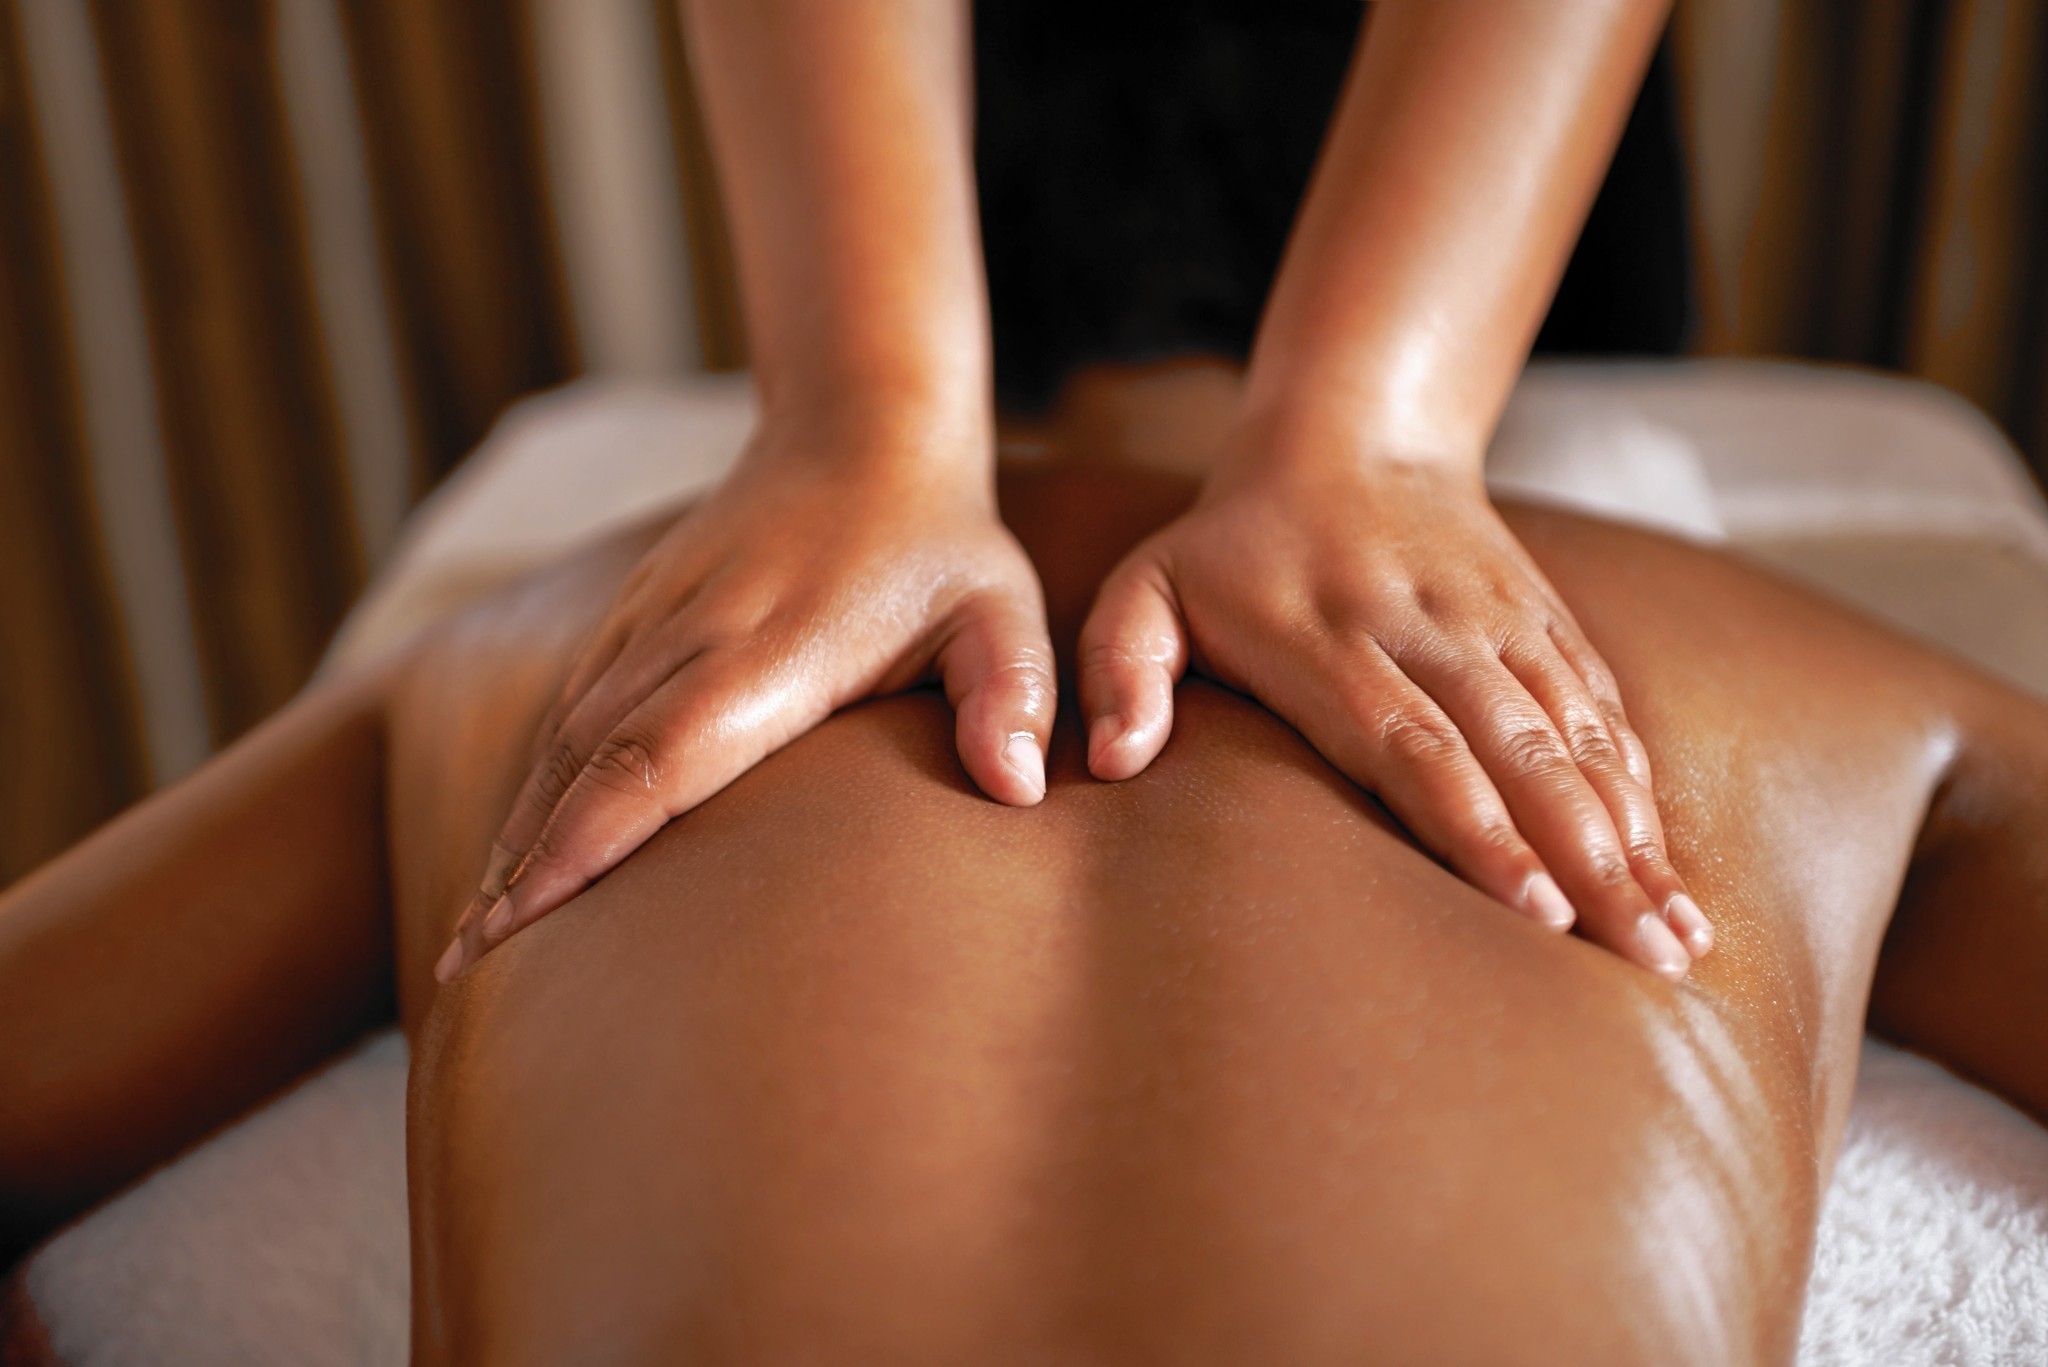 A Sensual Massage learn how to give a sensual therapeutic massage utilizing